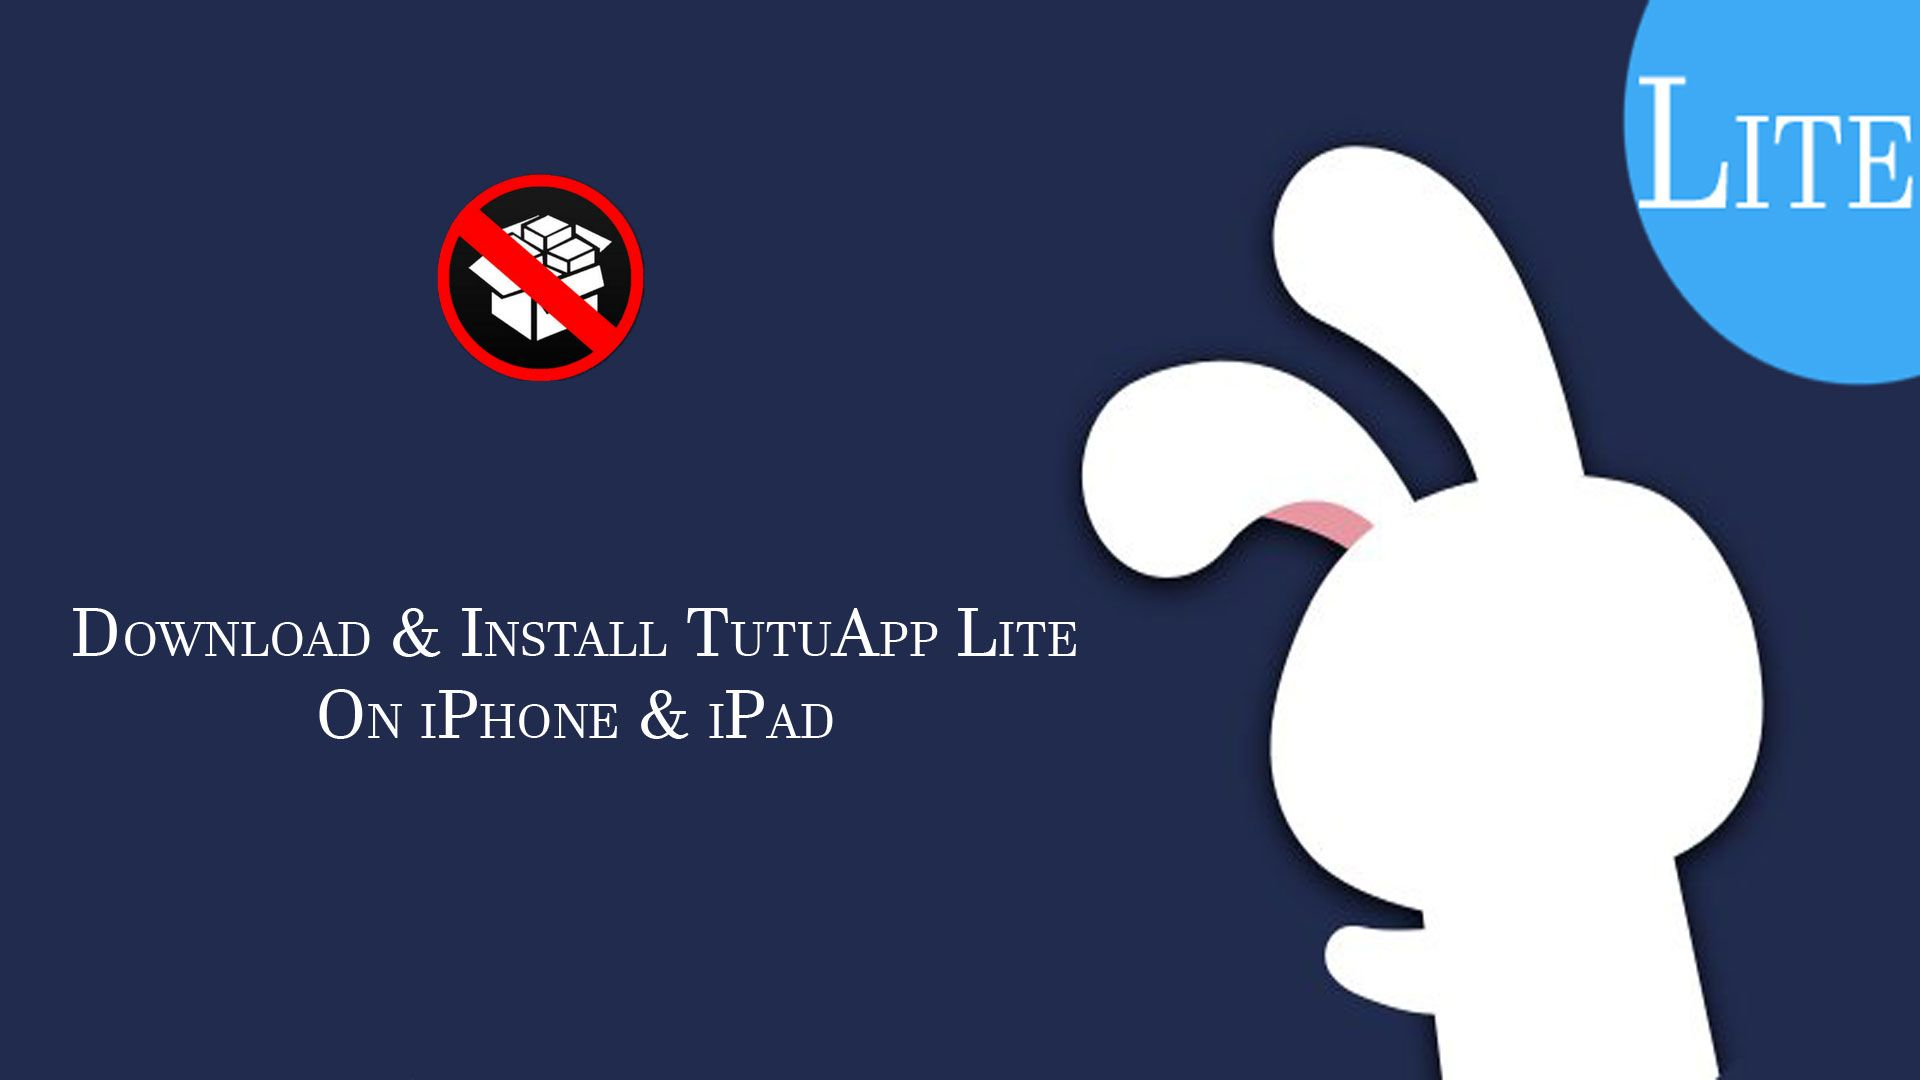 How to download & install TutuApp lite on iPhone/iPad